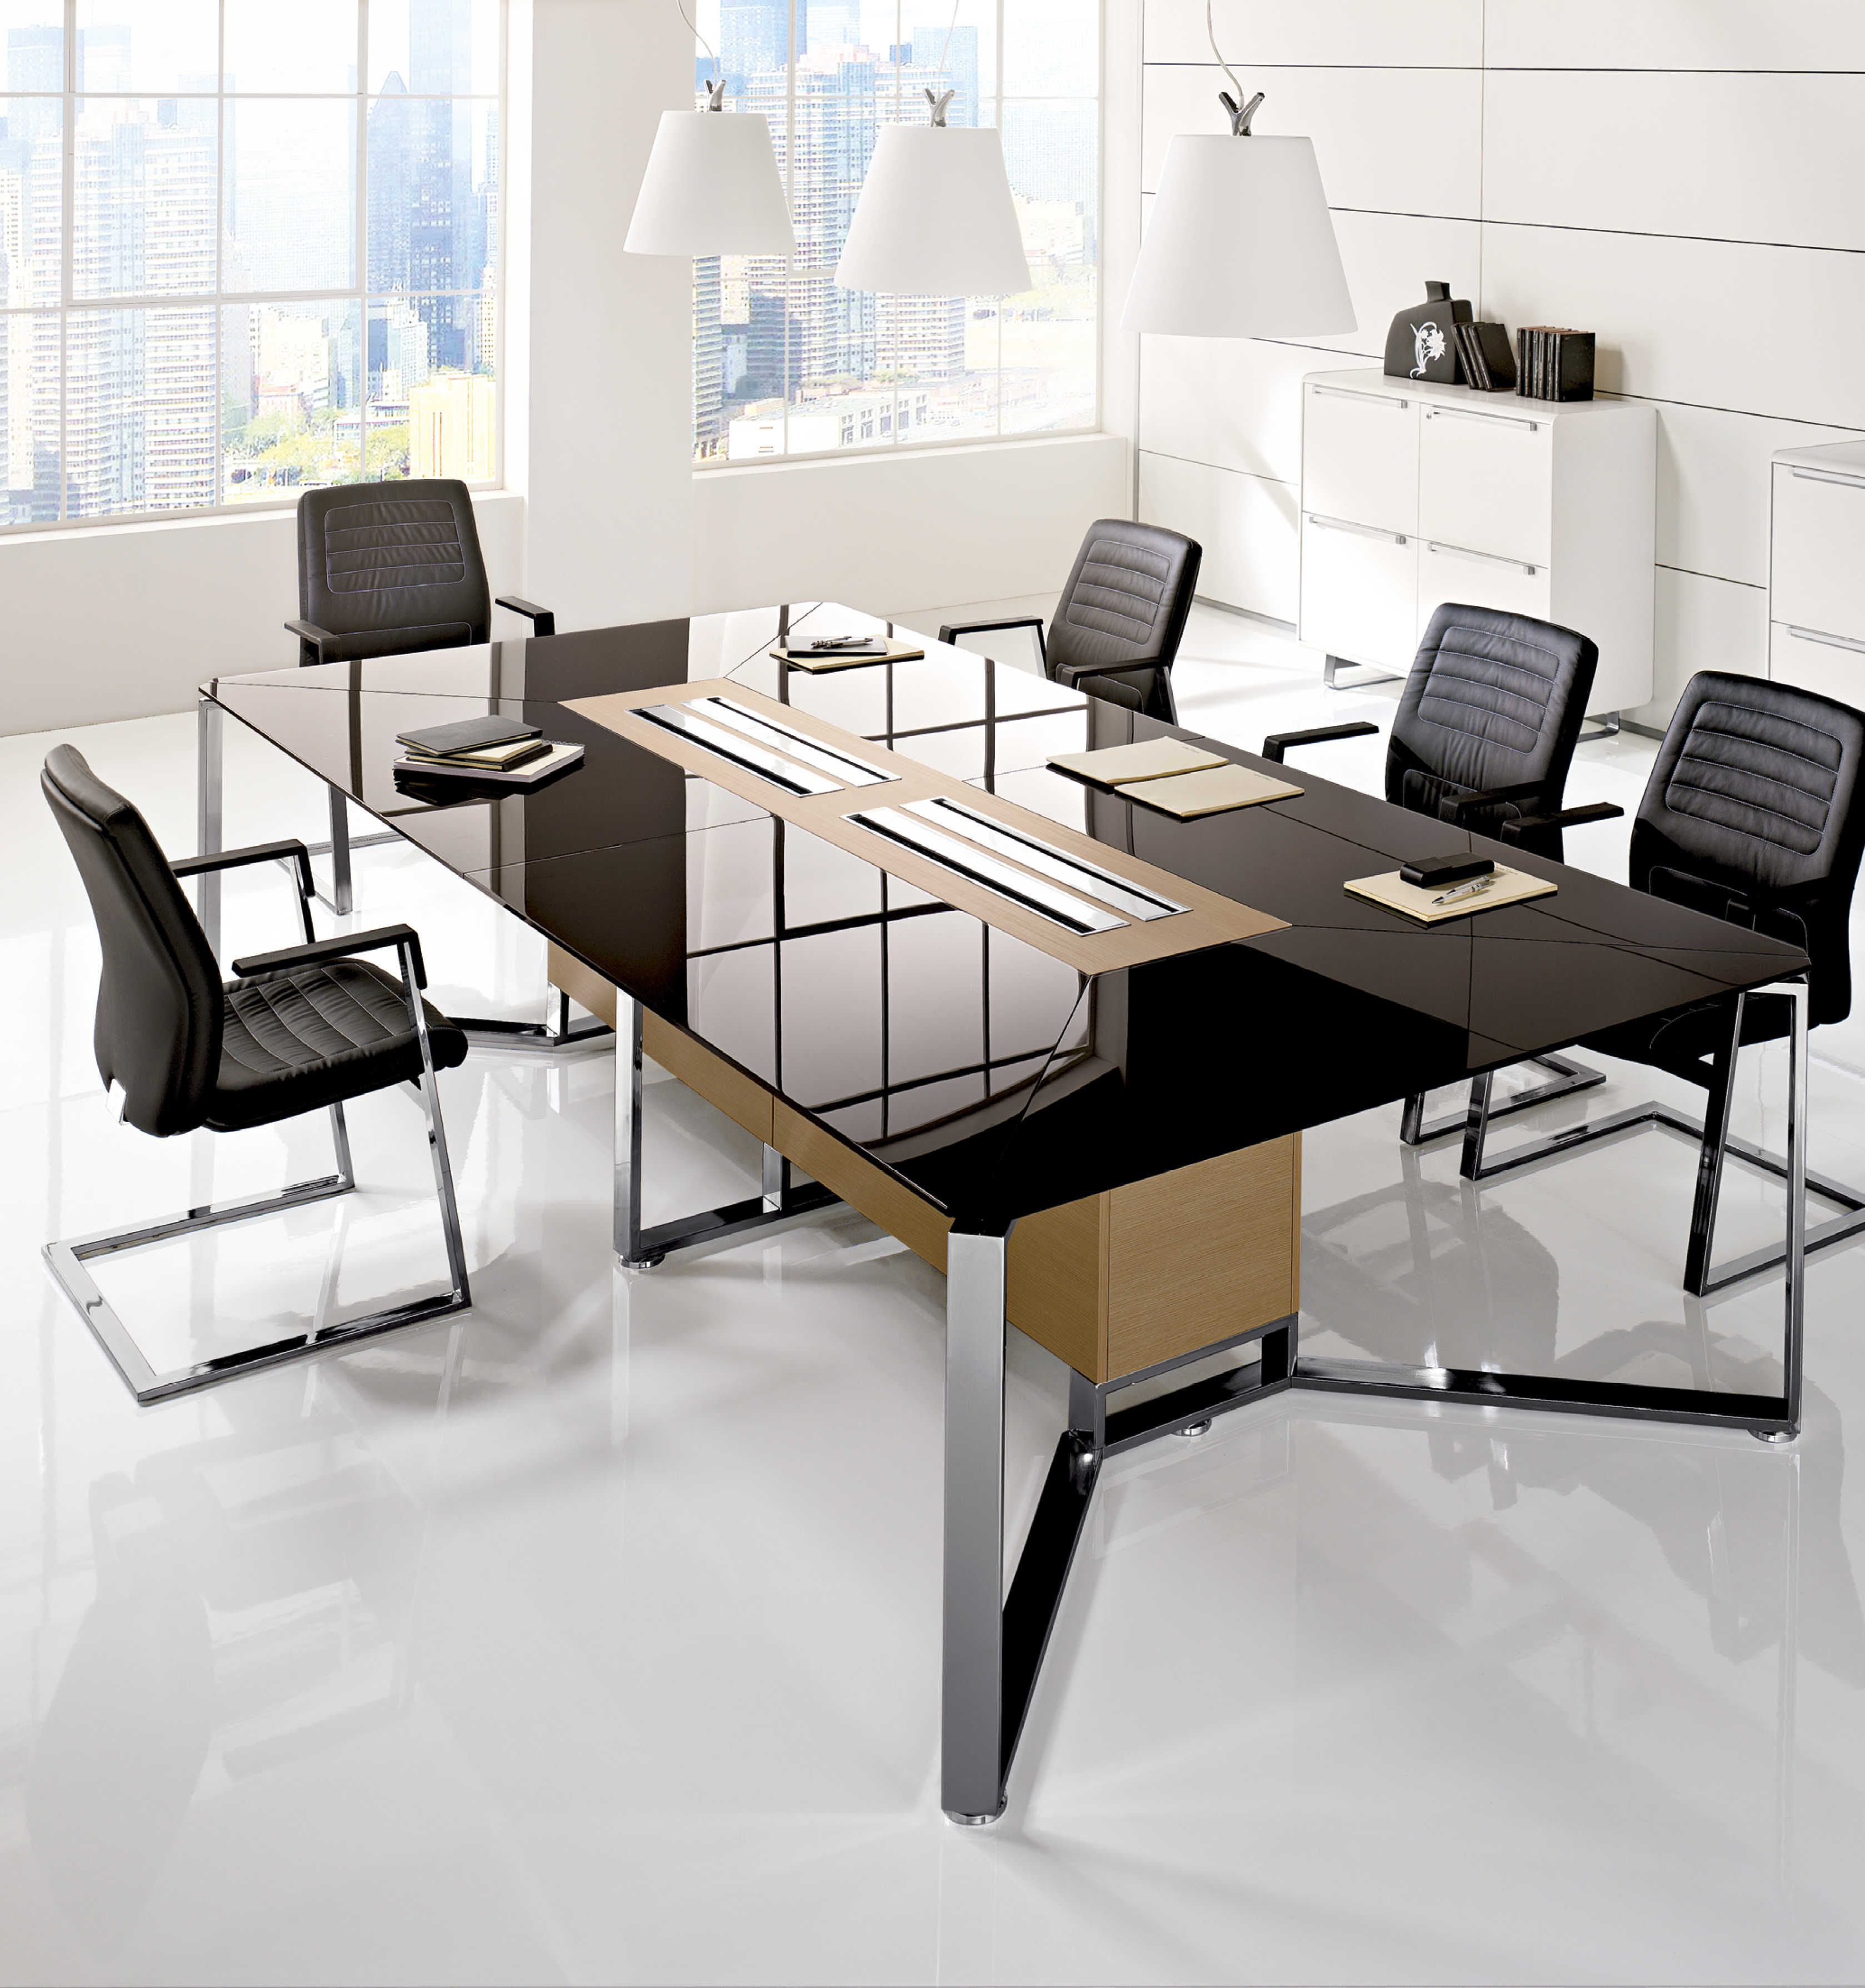 Boardroom Furniture For Sale: Meeting Table Office, Office